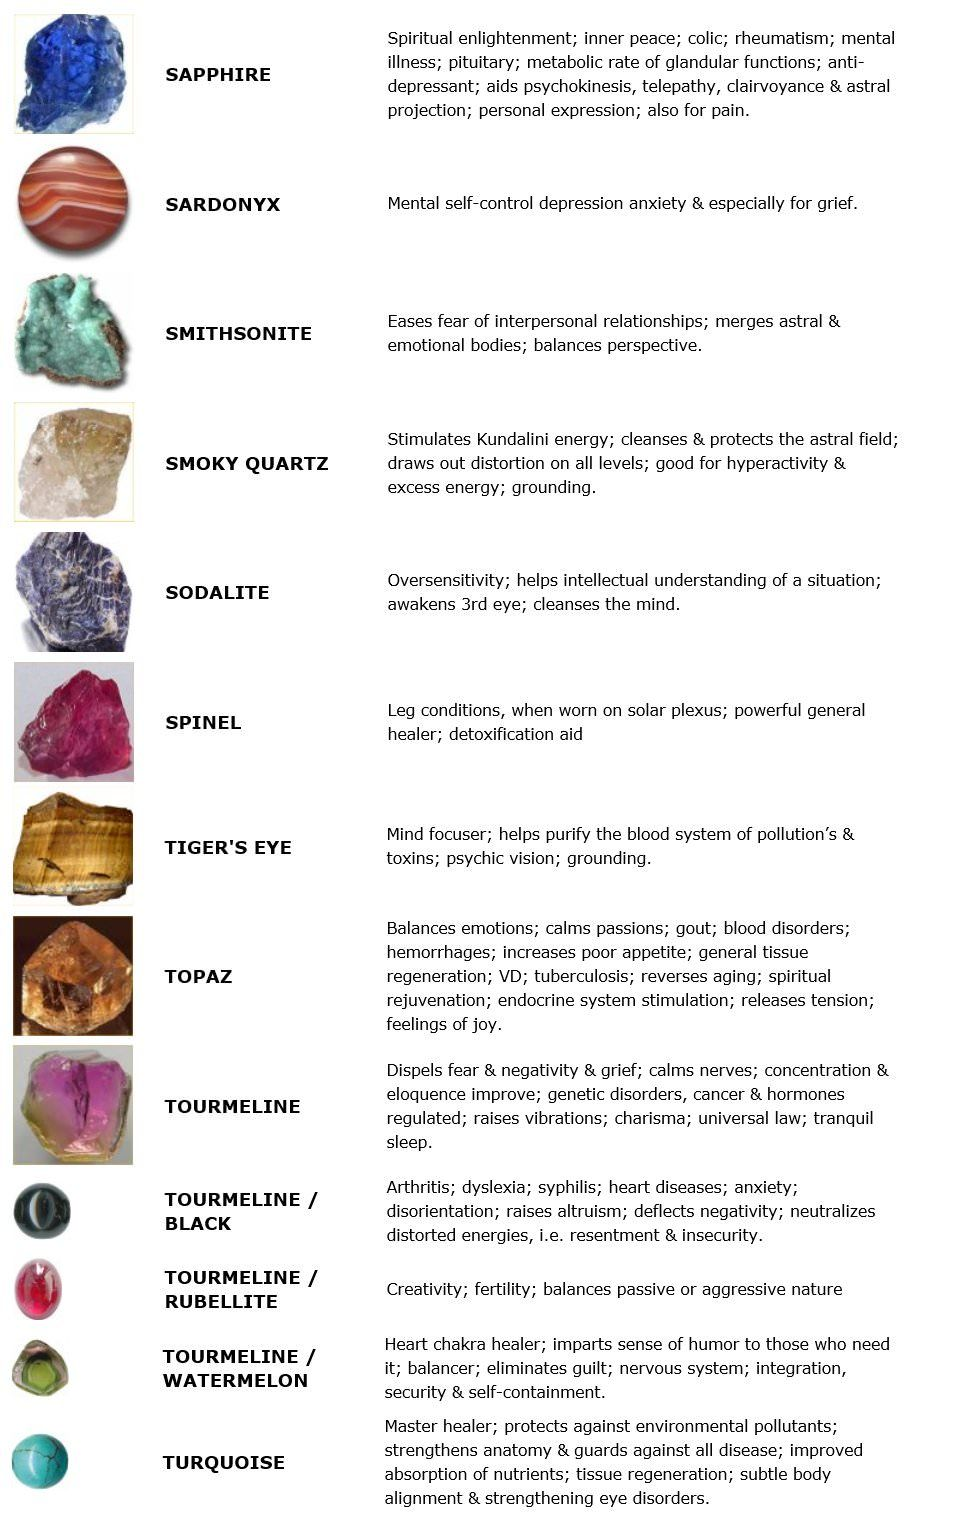 Guide To Crystals And Gemstones For Healing | Crystal Healing